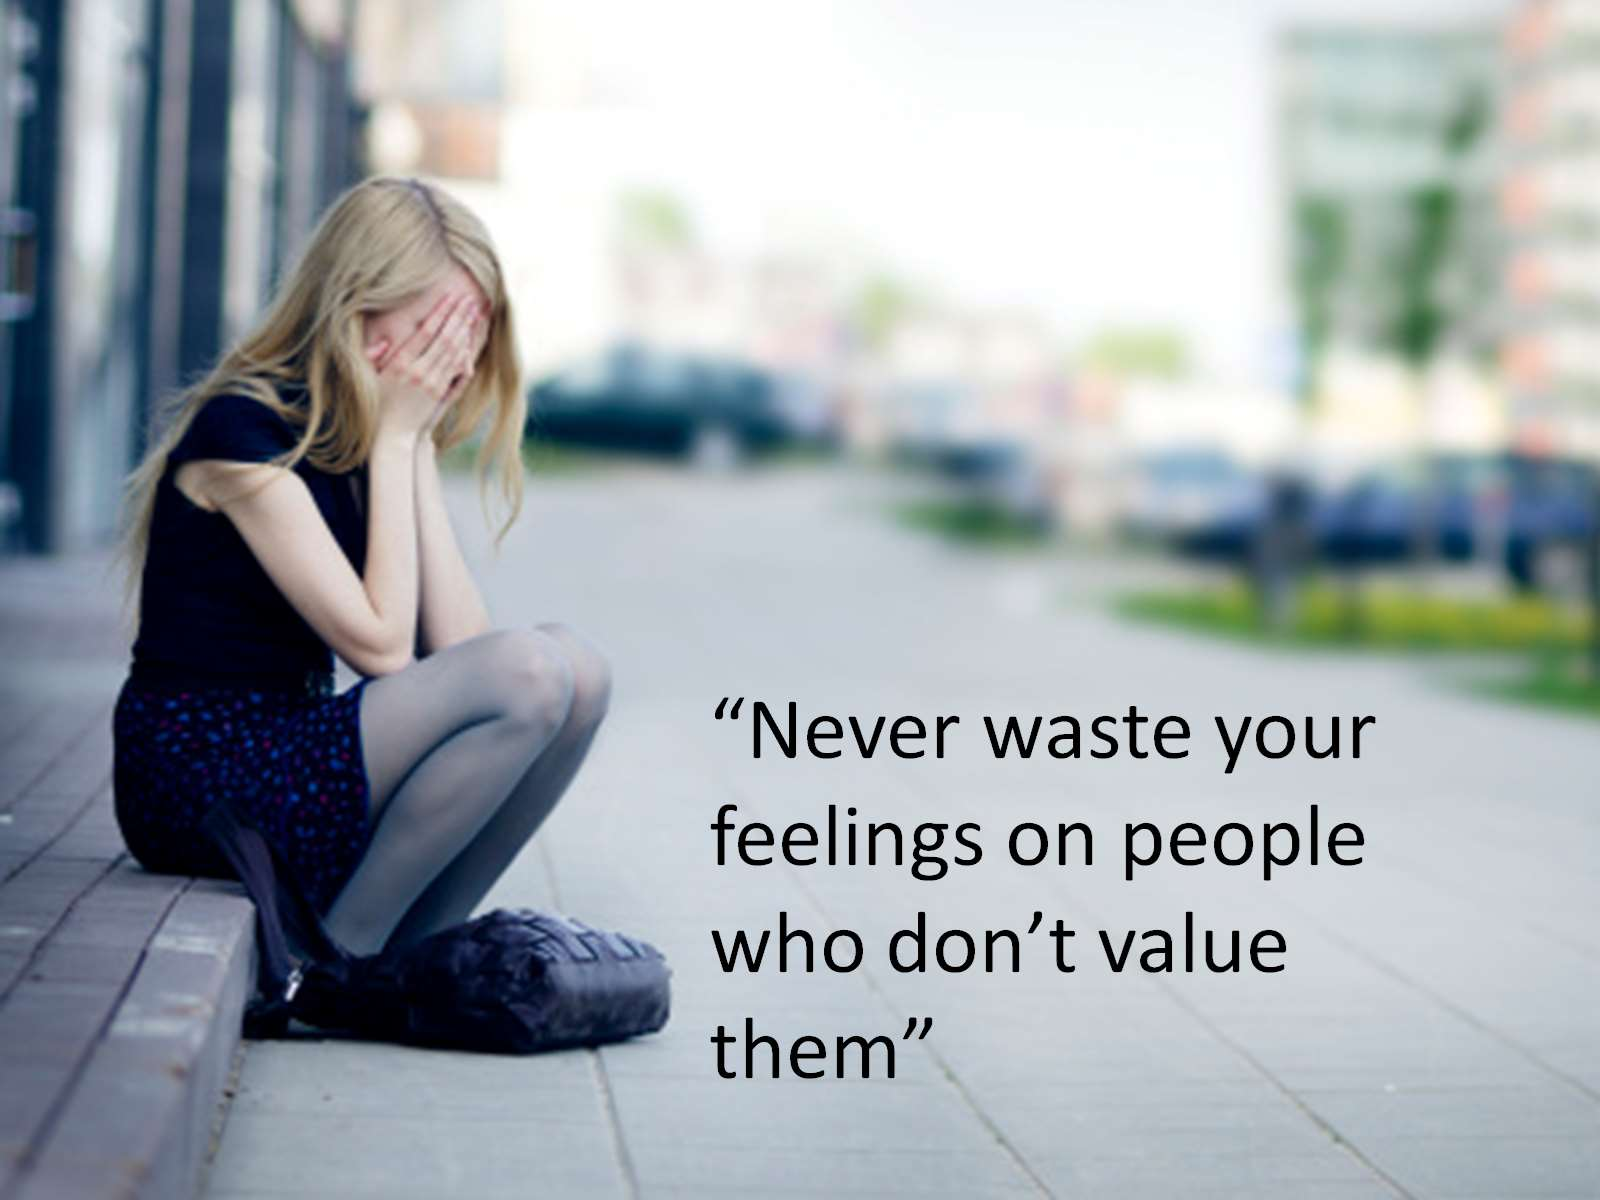 never waste your feeling on people who don't value them